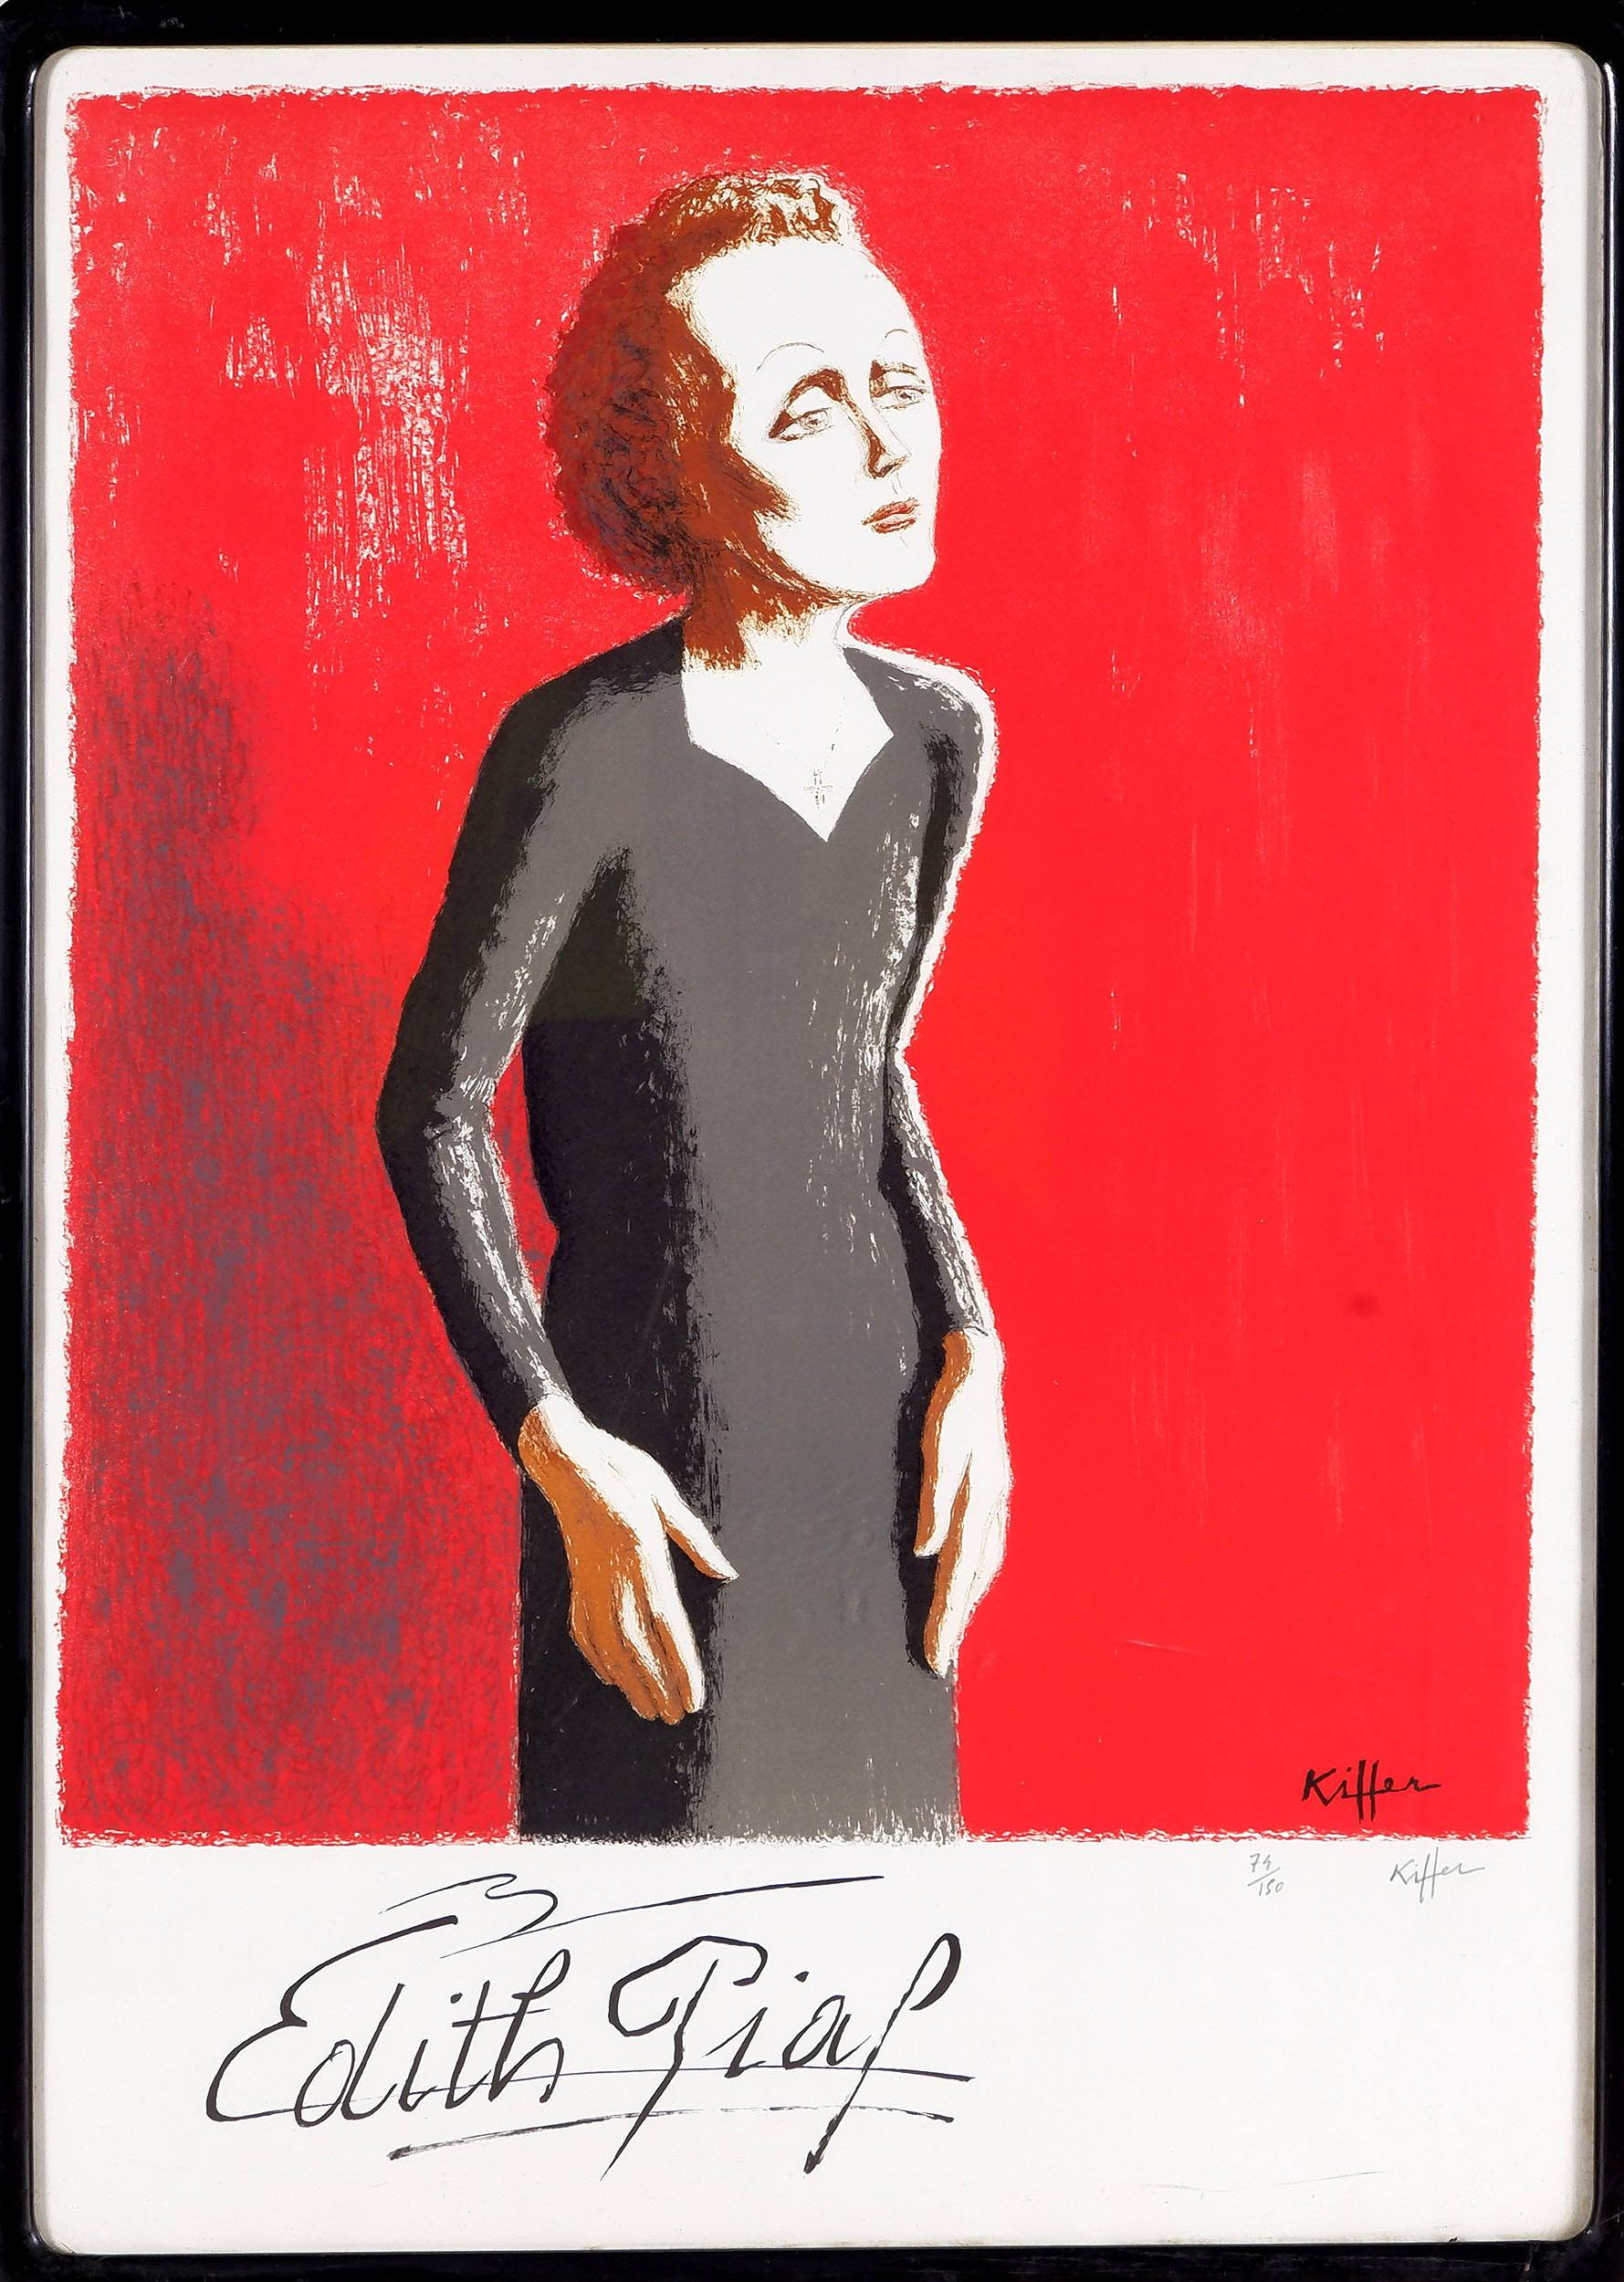 'Charles Kiffer (French 1902-1992) Edith Piaf, Lithograph Edition 79/150'